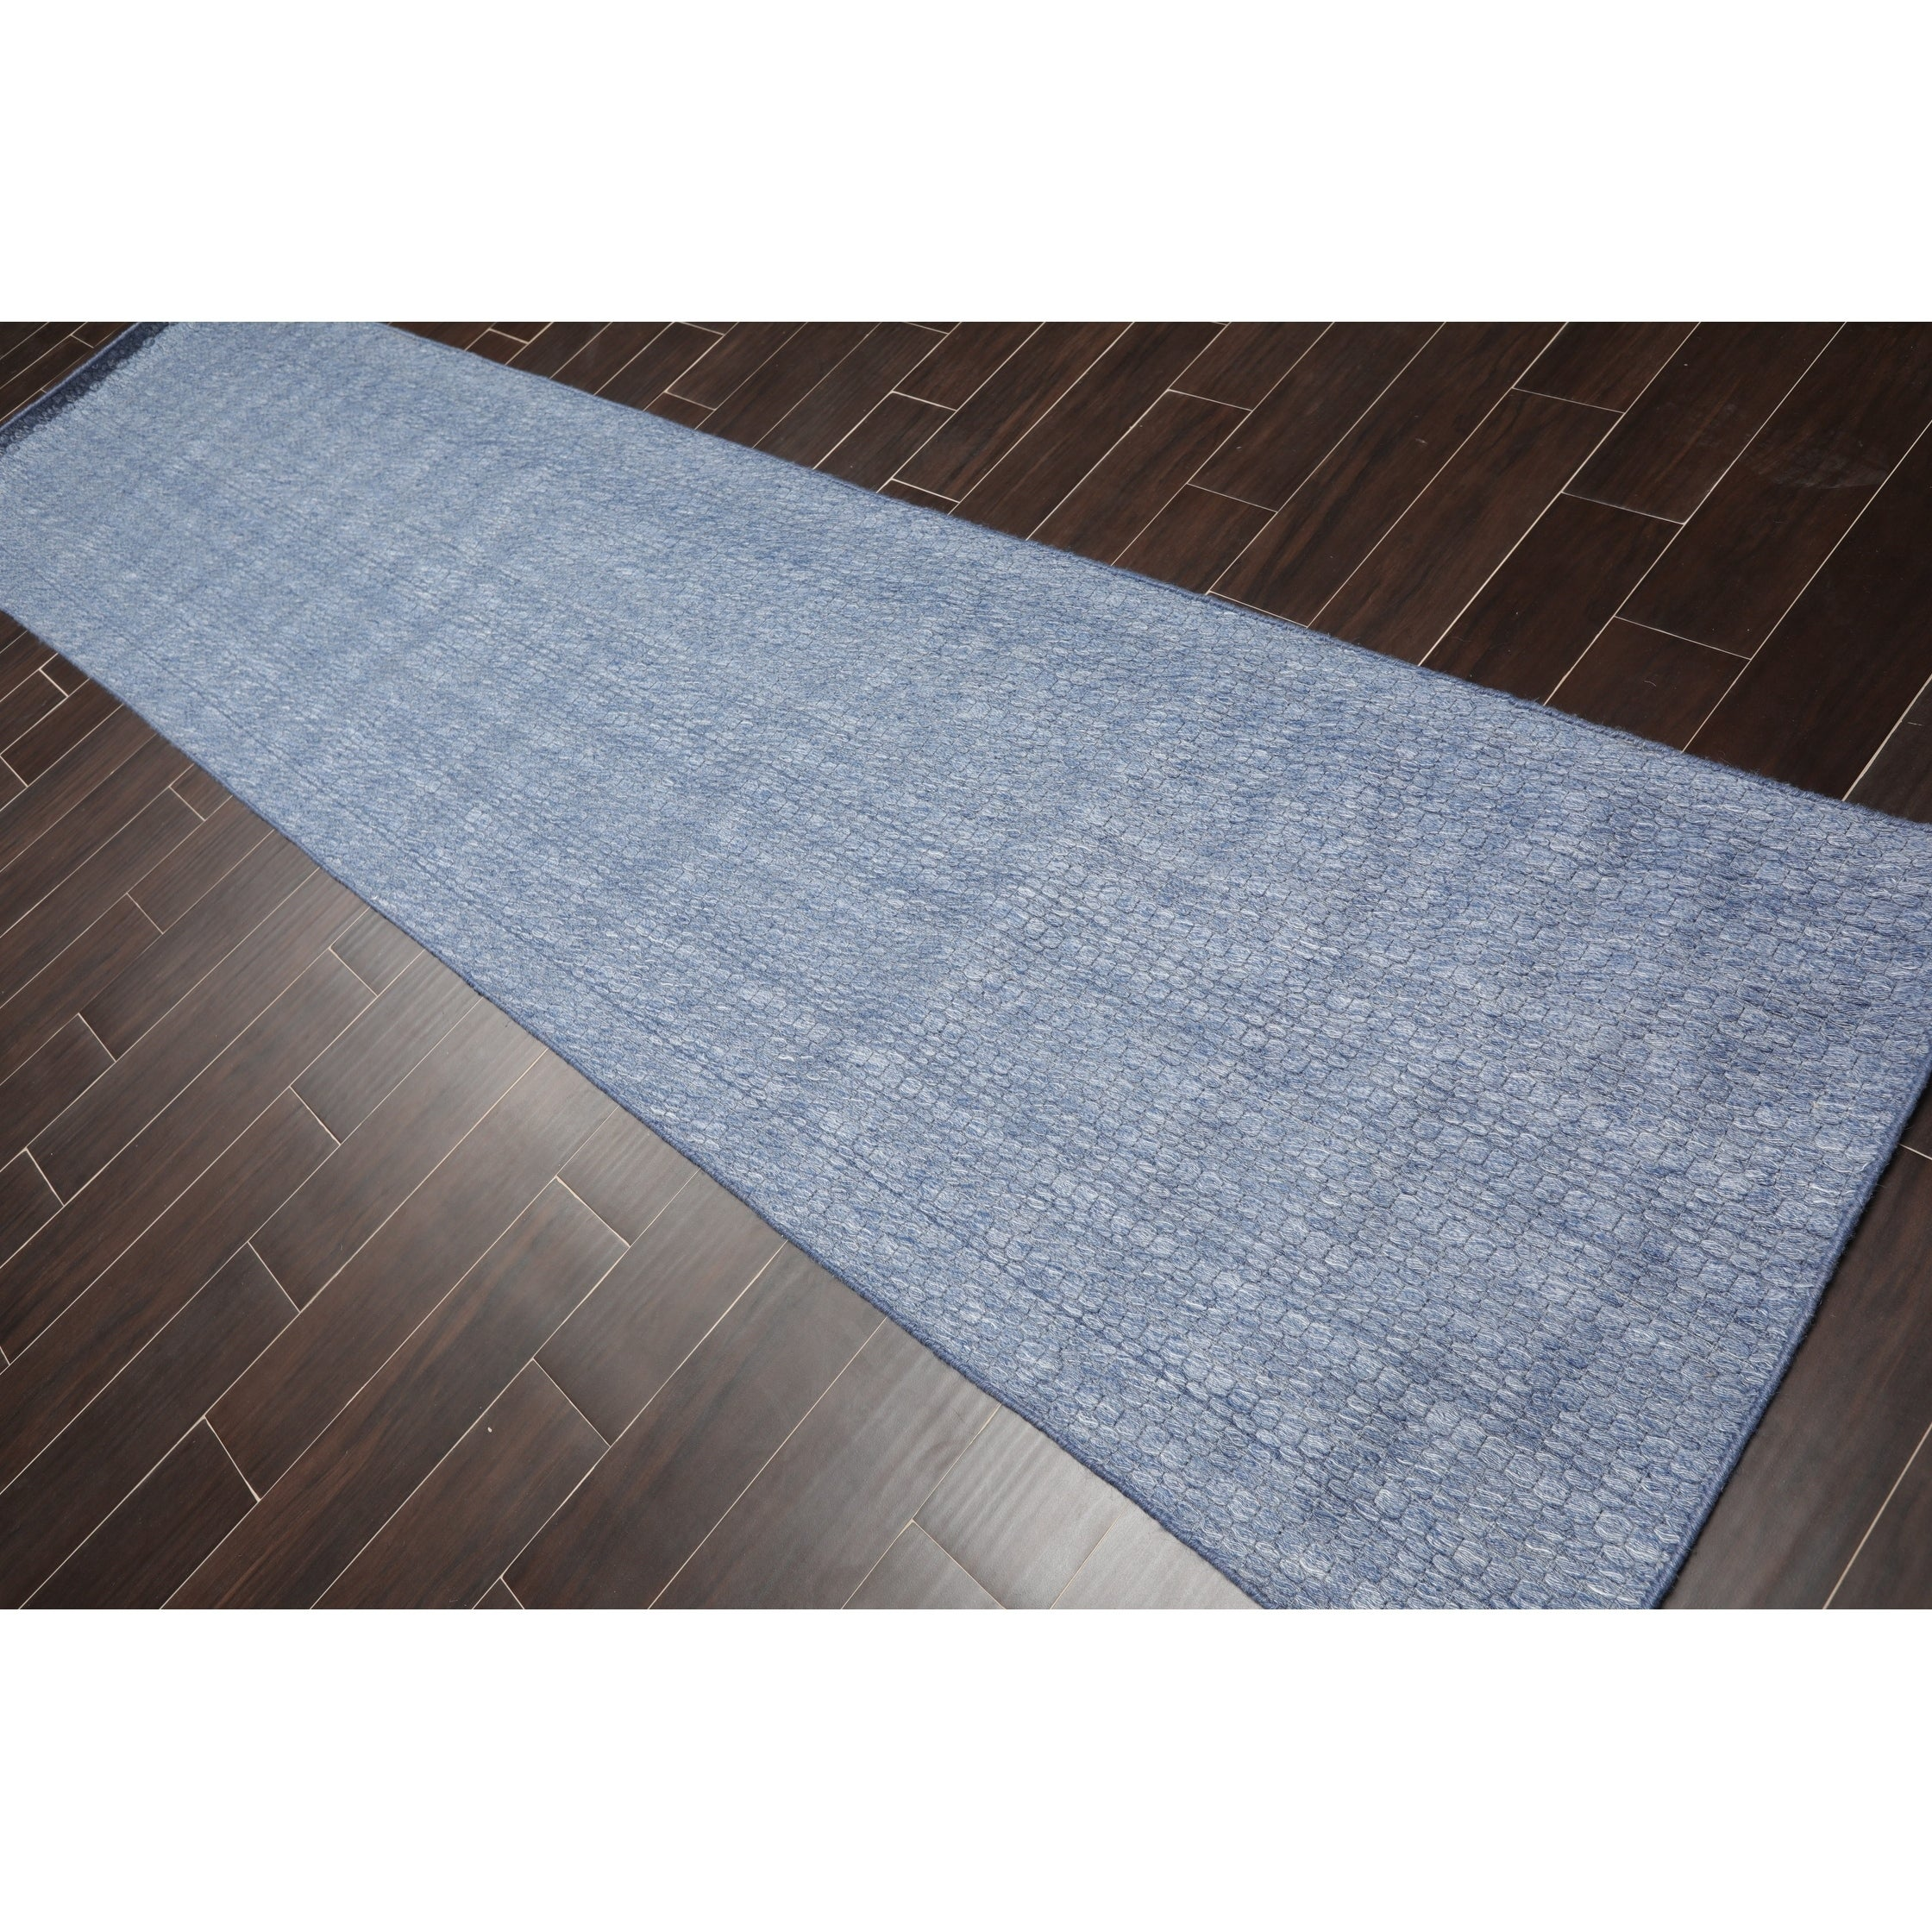 Contemporary Hand Woven Wool Flatweave Area Rug 5 X8 5 X 8 On Sale Overstock 30584502